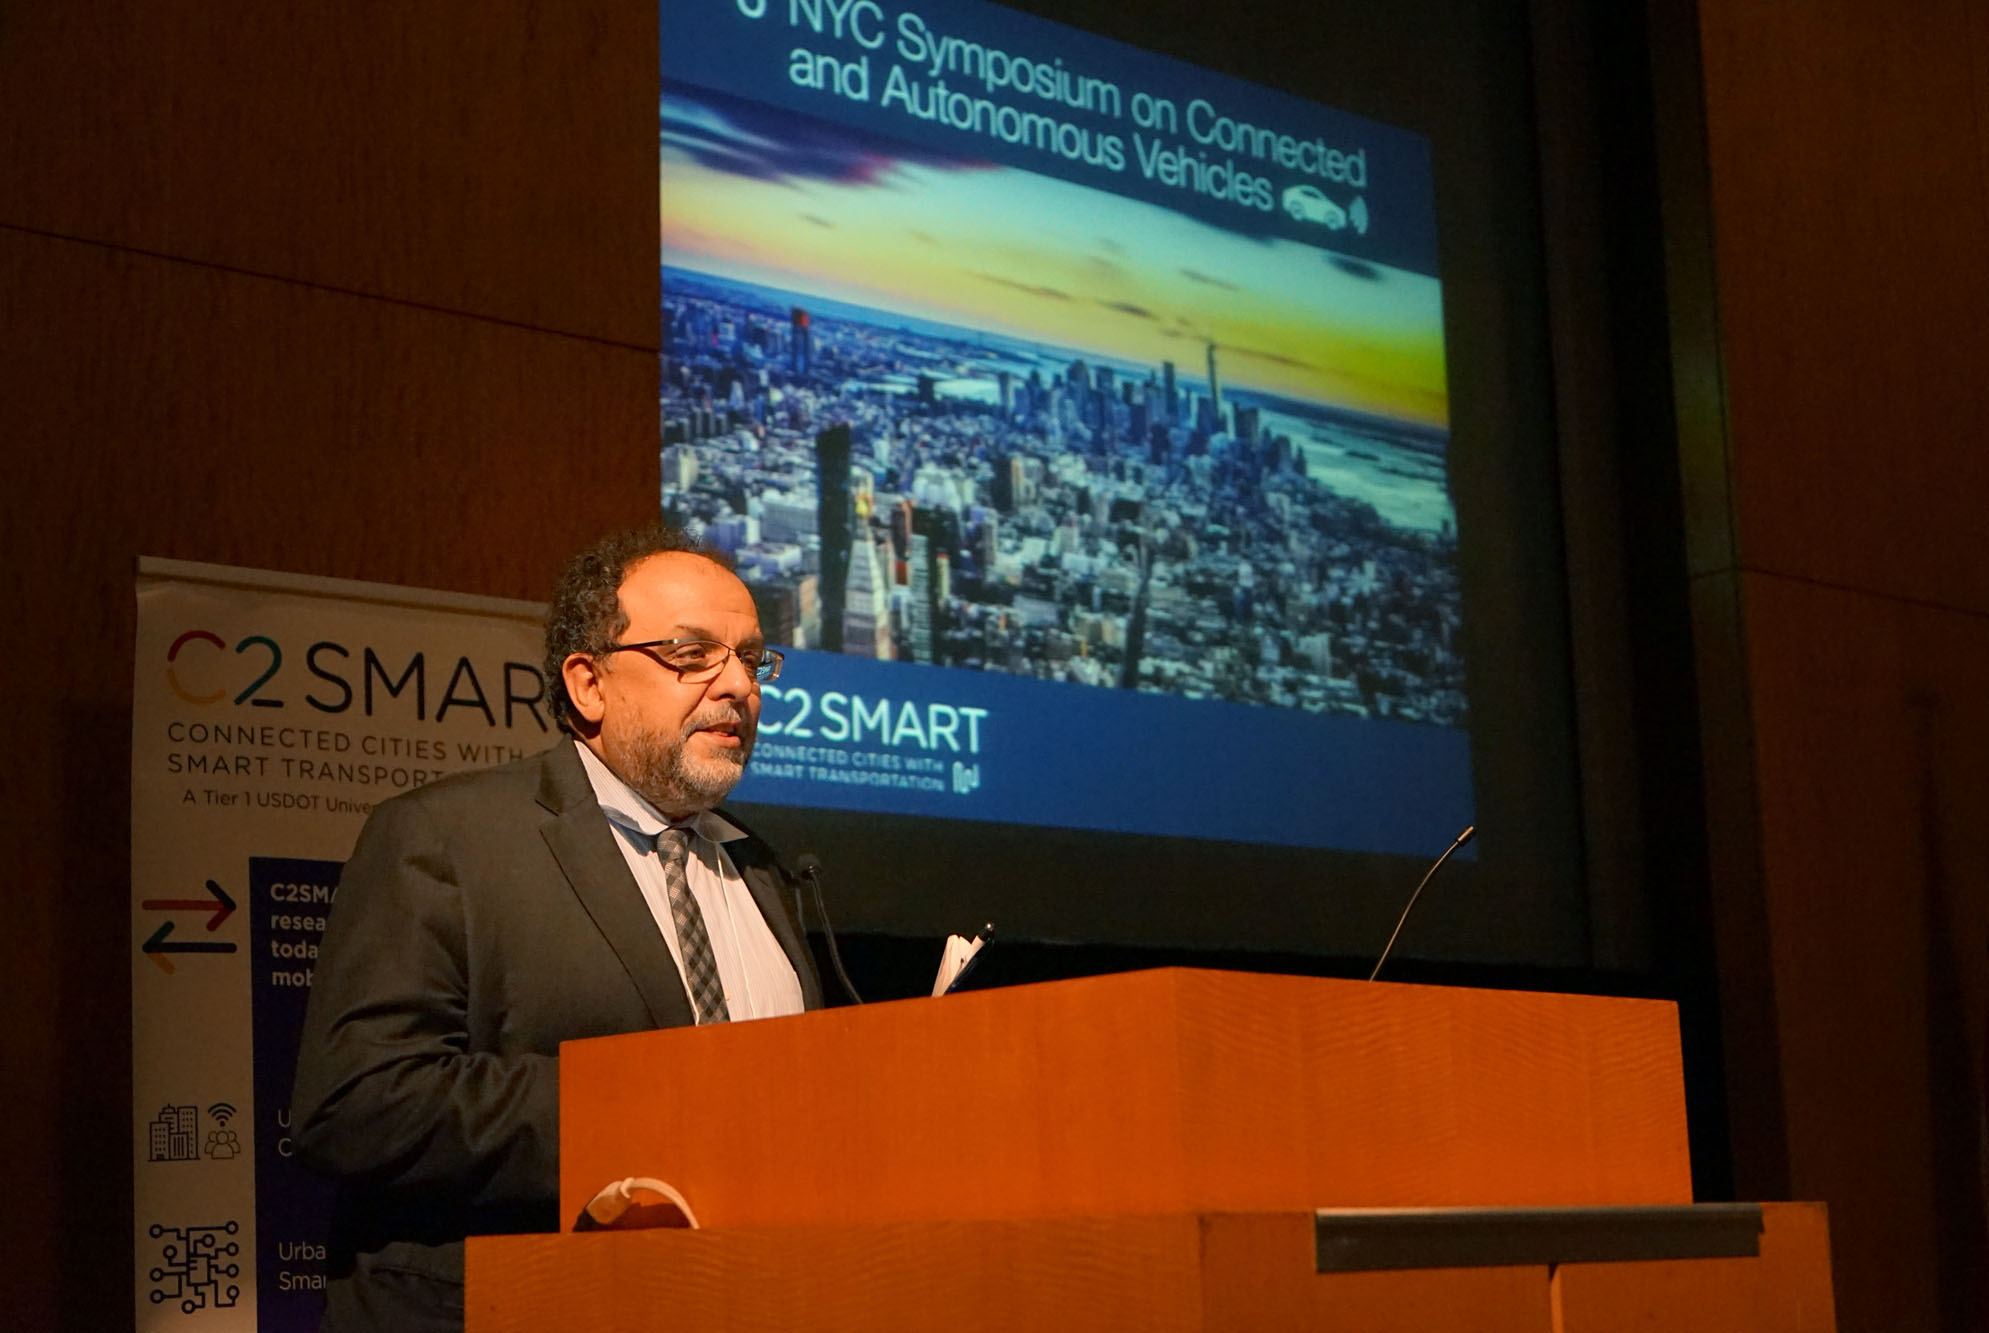 C2SMART Director Kaan Ozbay offers opening remarks at the start of the 6th NYC Symposium on Connected and Autonomous Vehicles